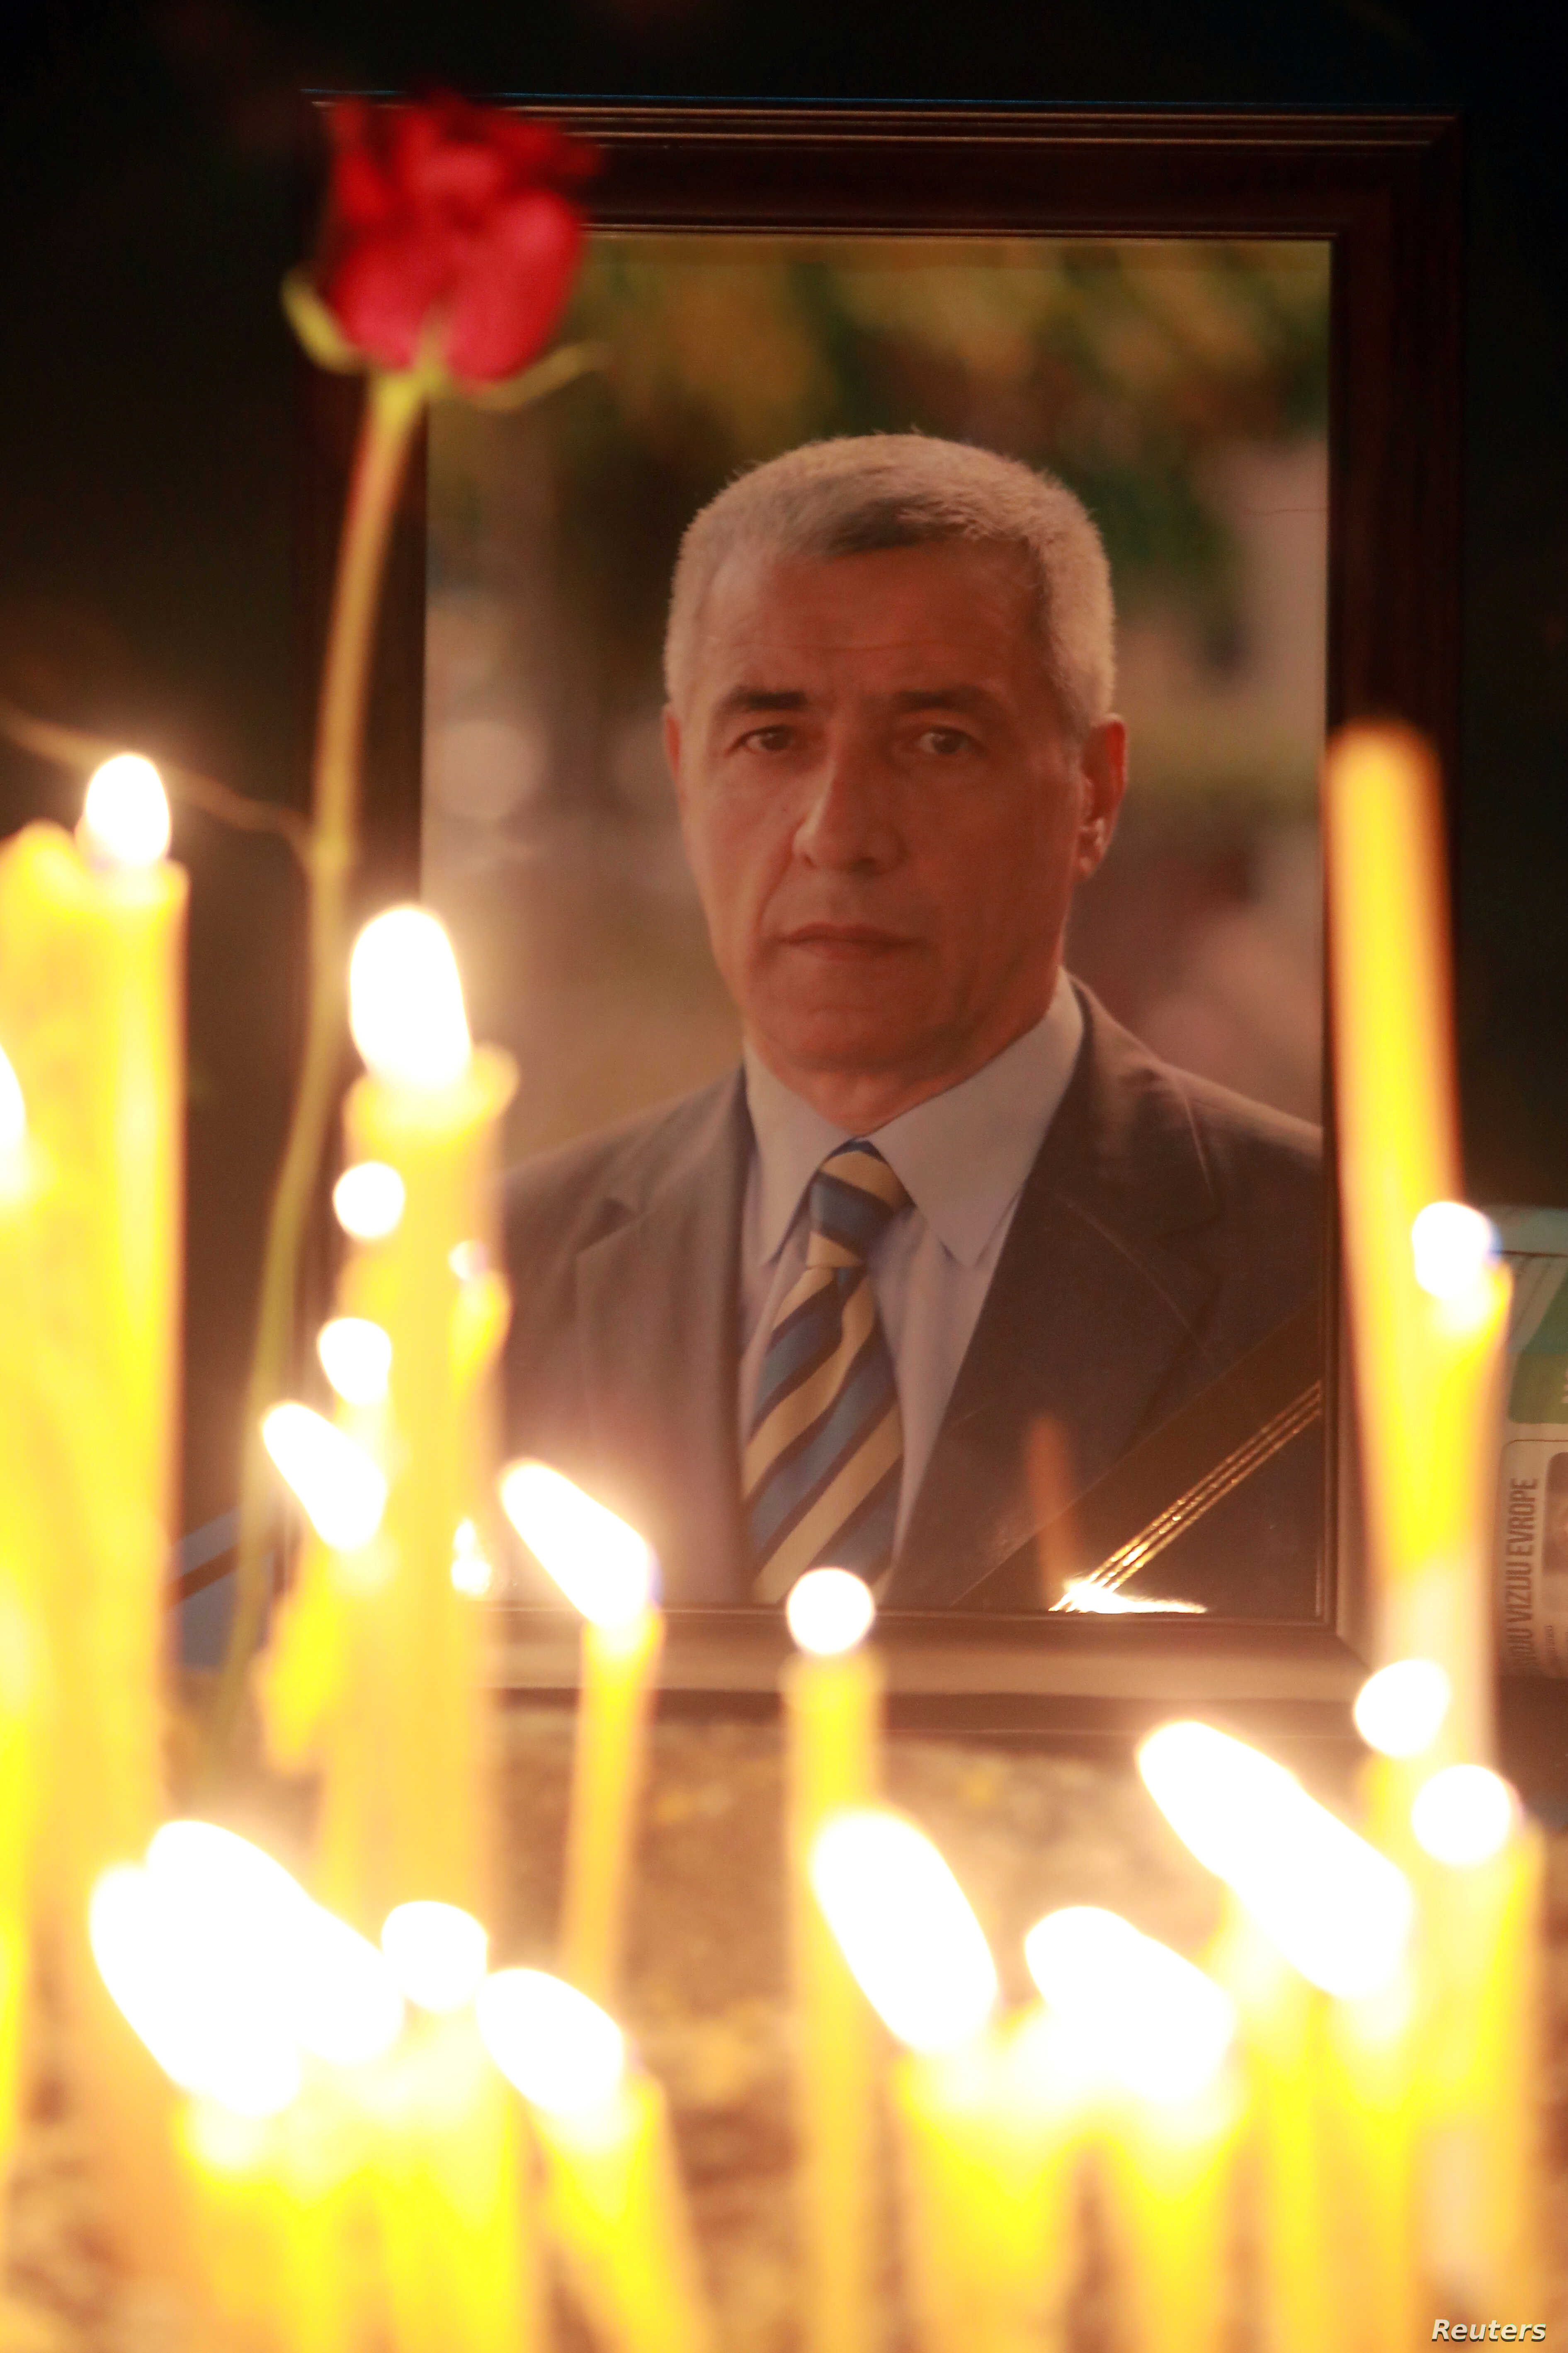 FILE - A portrait of Oliver Ivanovic is seen during a memorial service for the Kosovo Serb leader in Mitrovica, Kosovo, Jan. 16, 2018.